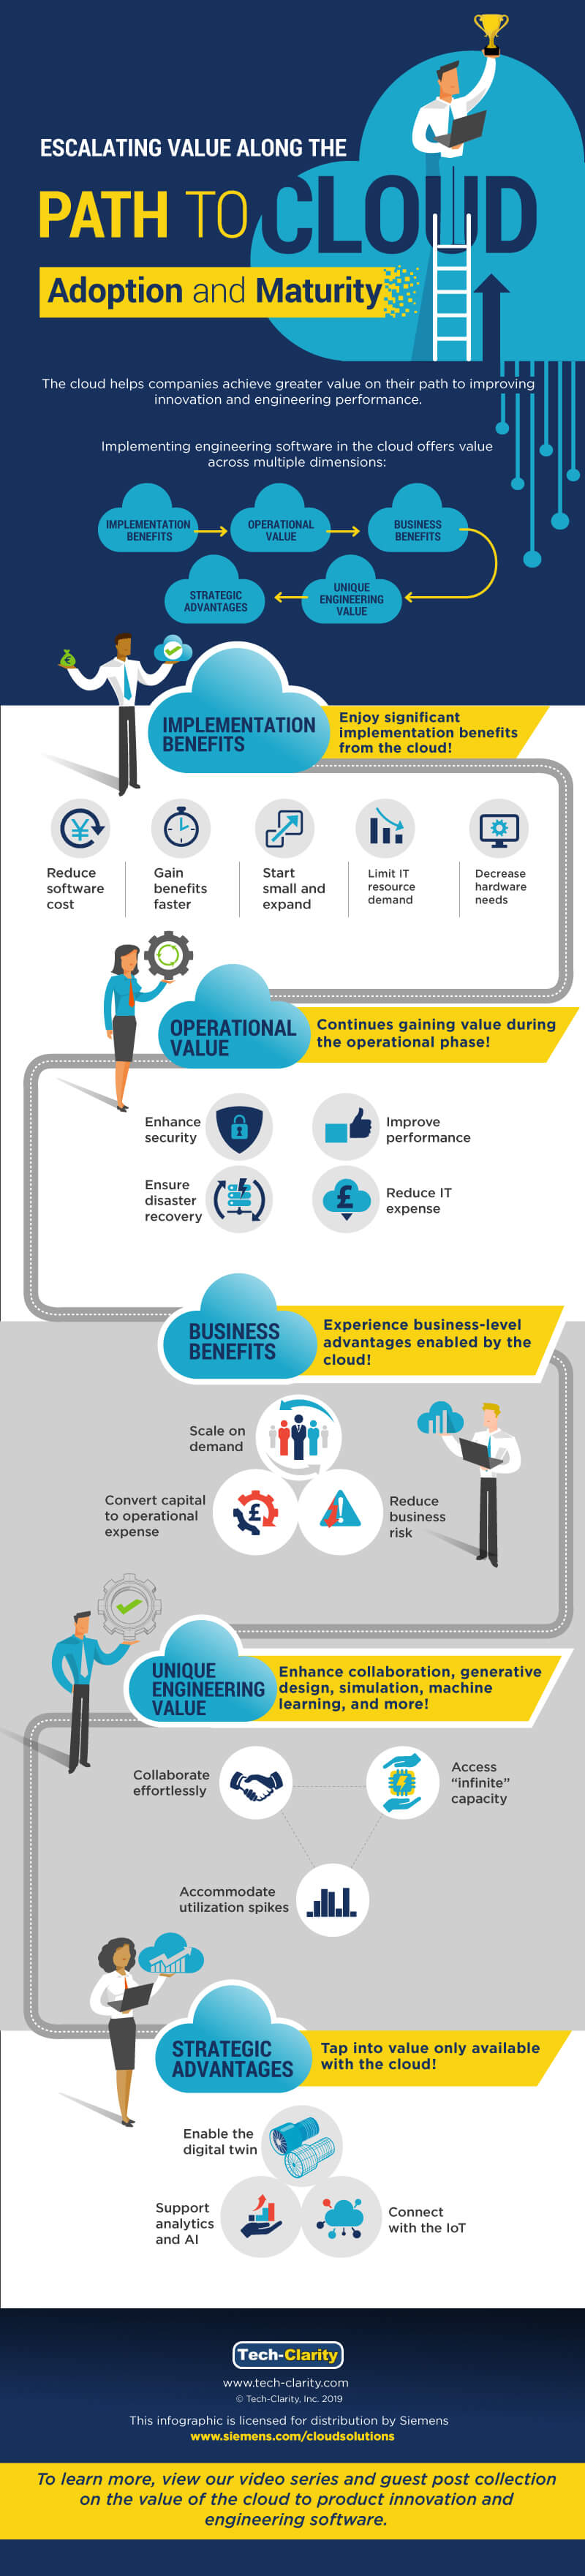 Cloud Value Escalation Infographic